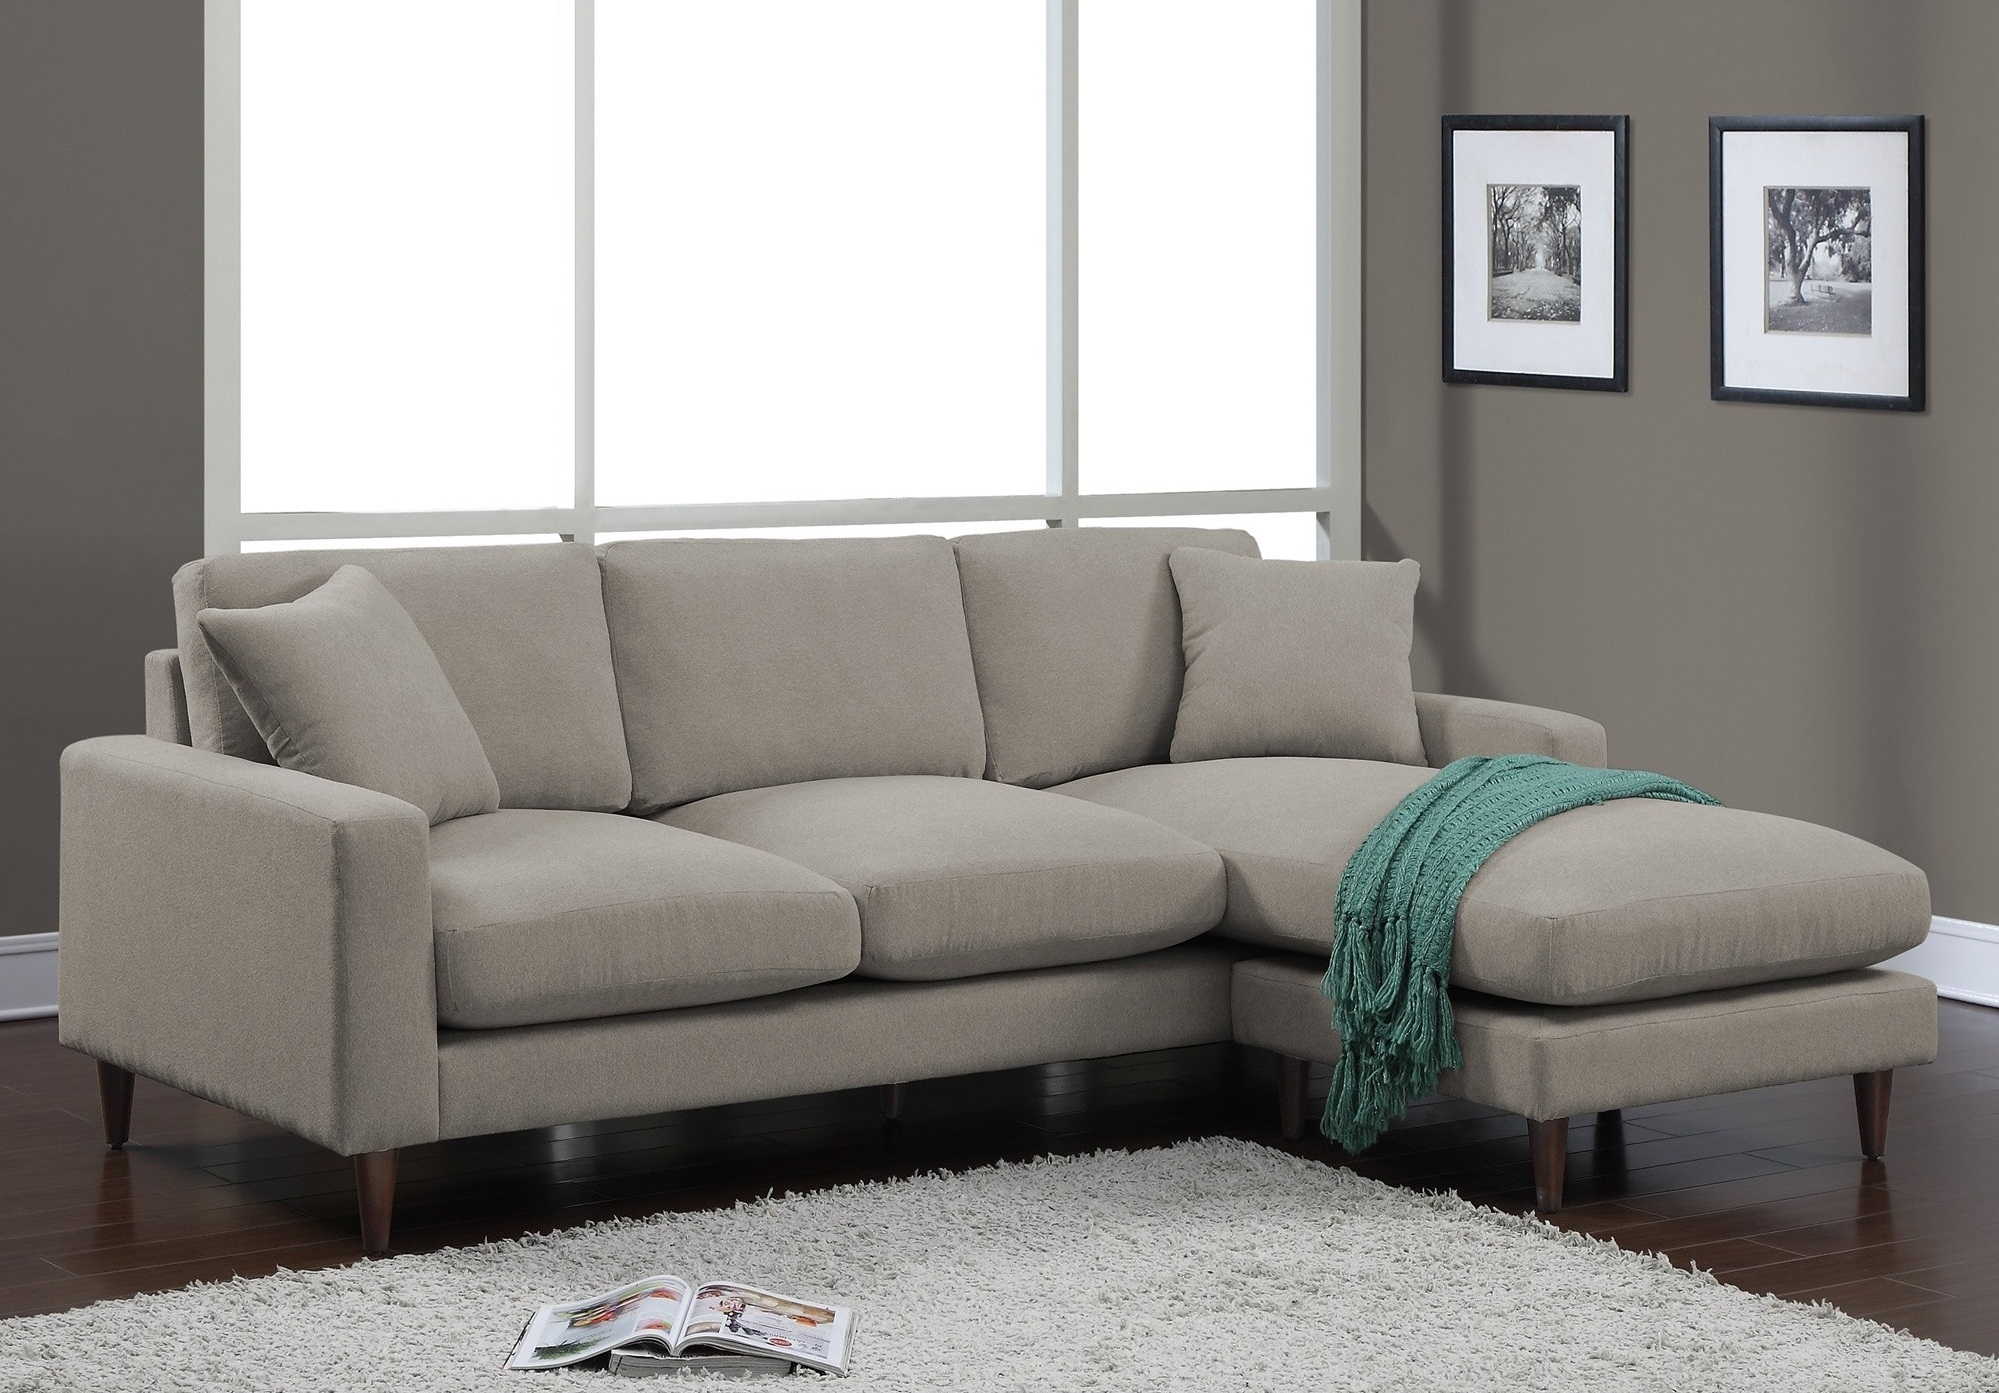 Lovable Sleeper Sofa With Chaise Lounge Alluring Living Room Within Target Sectional Sofas (View 4 of 10)